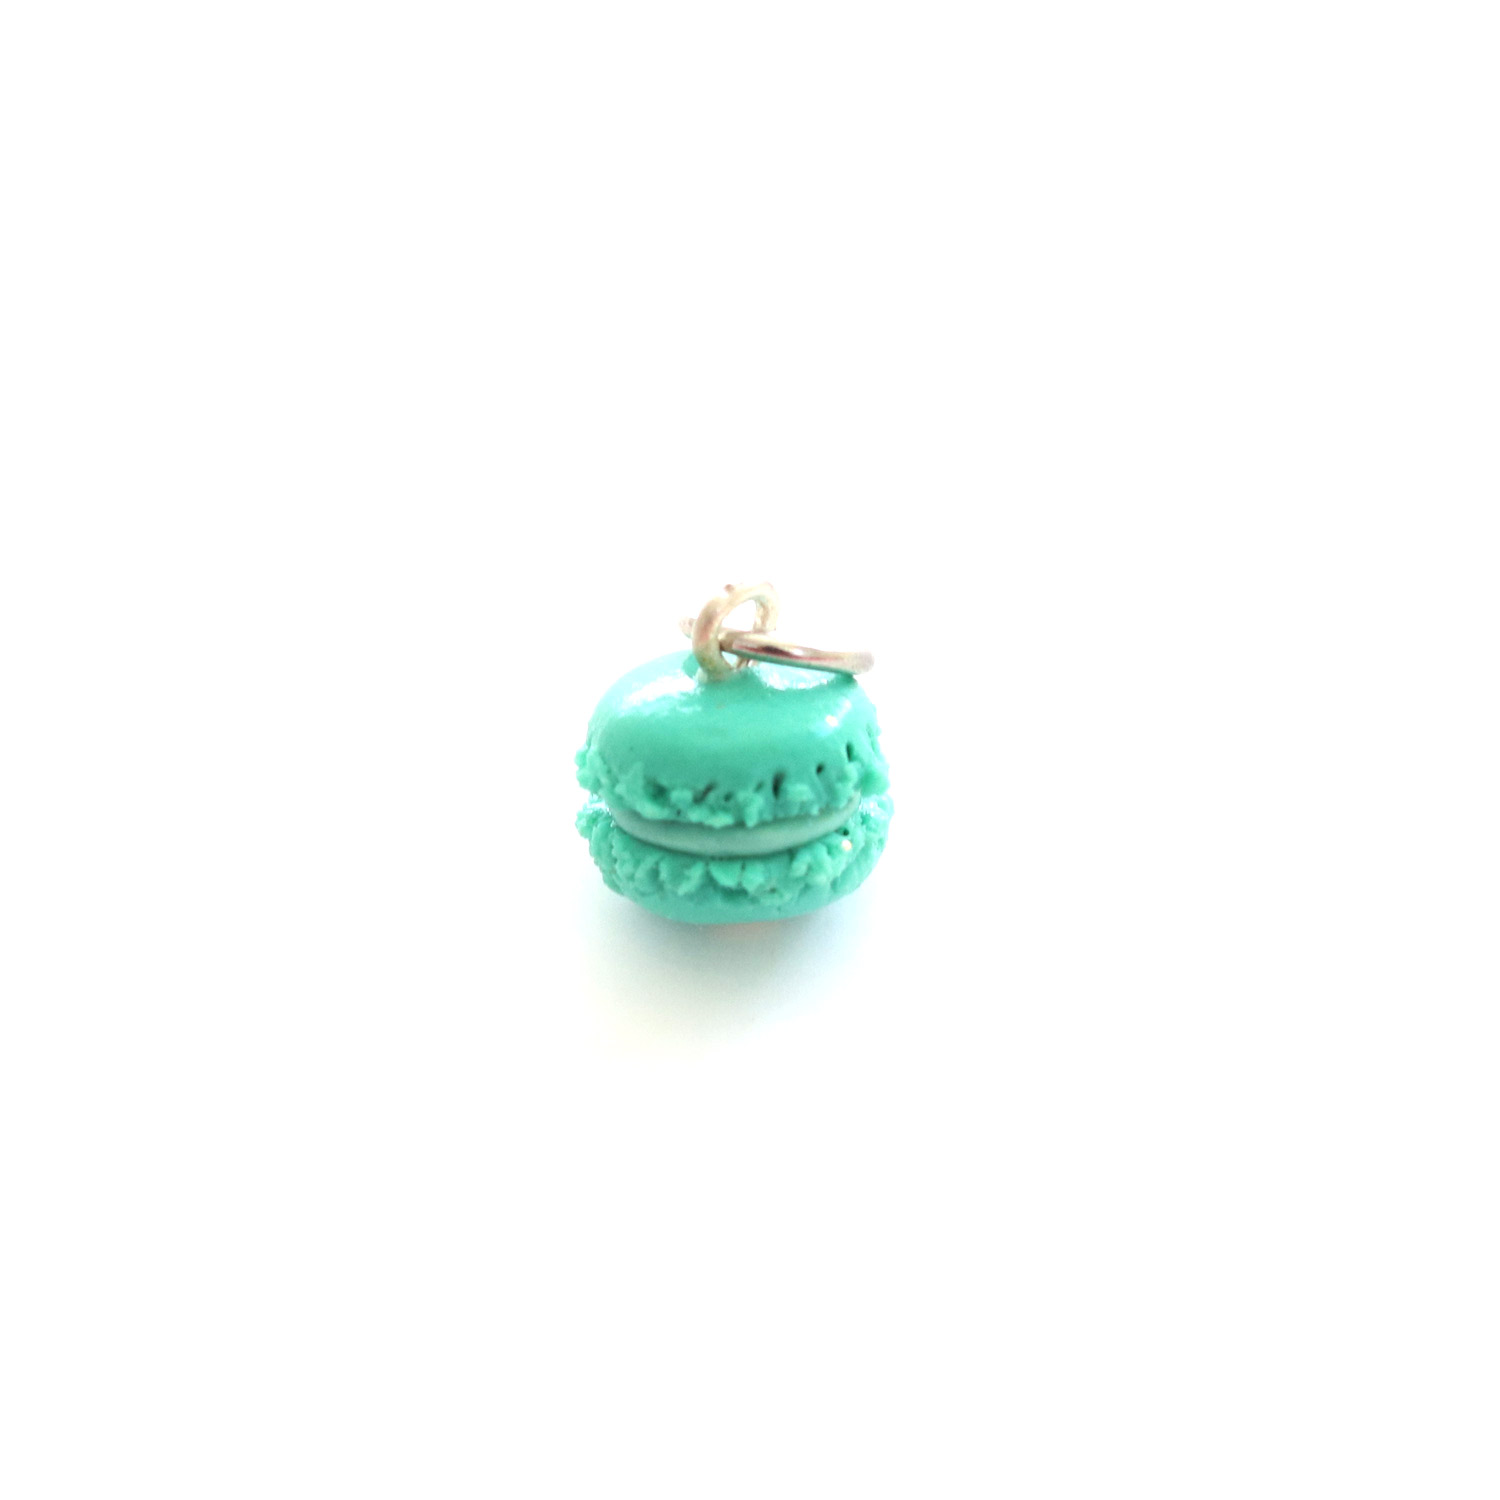 Macaroon Charm/ Necklace